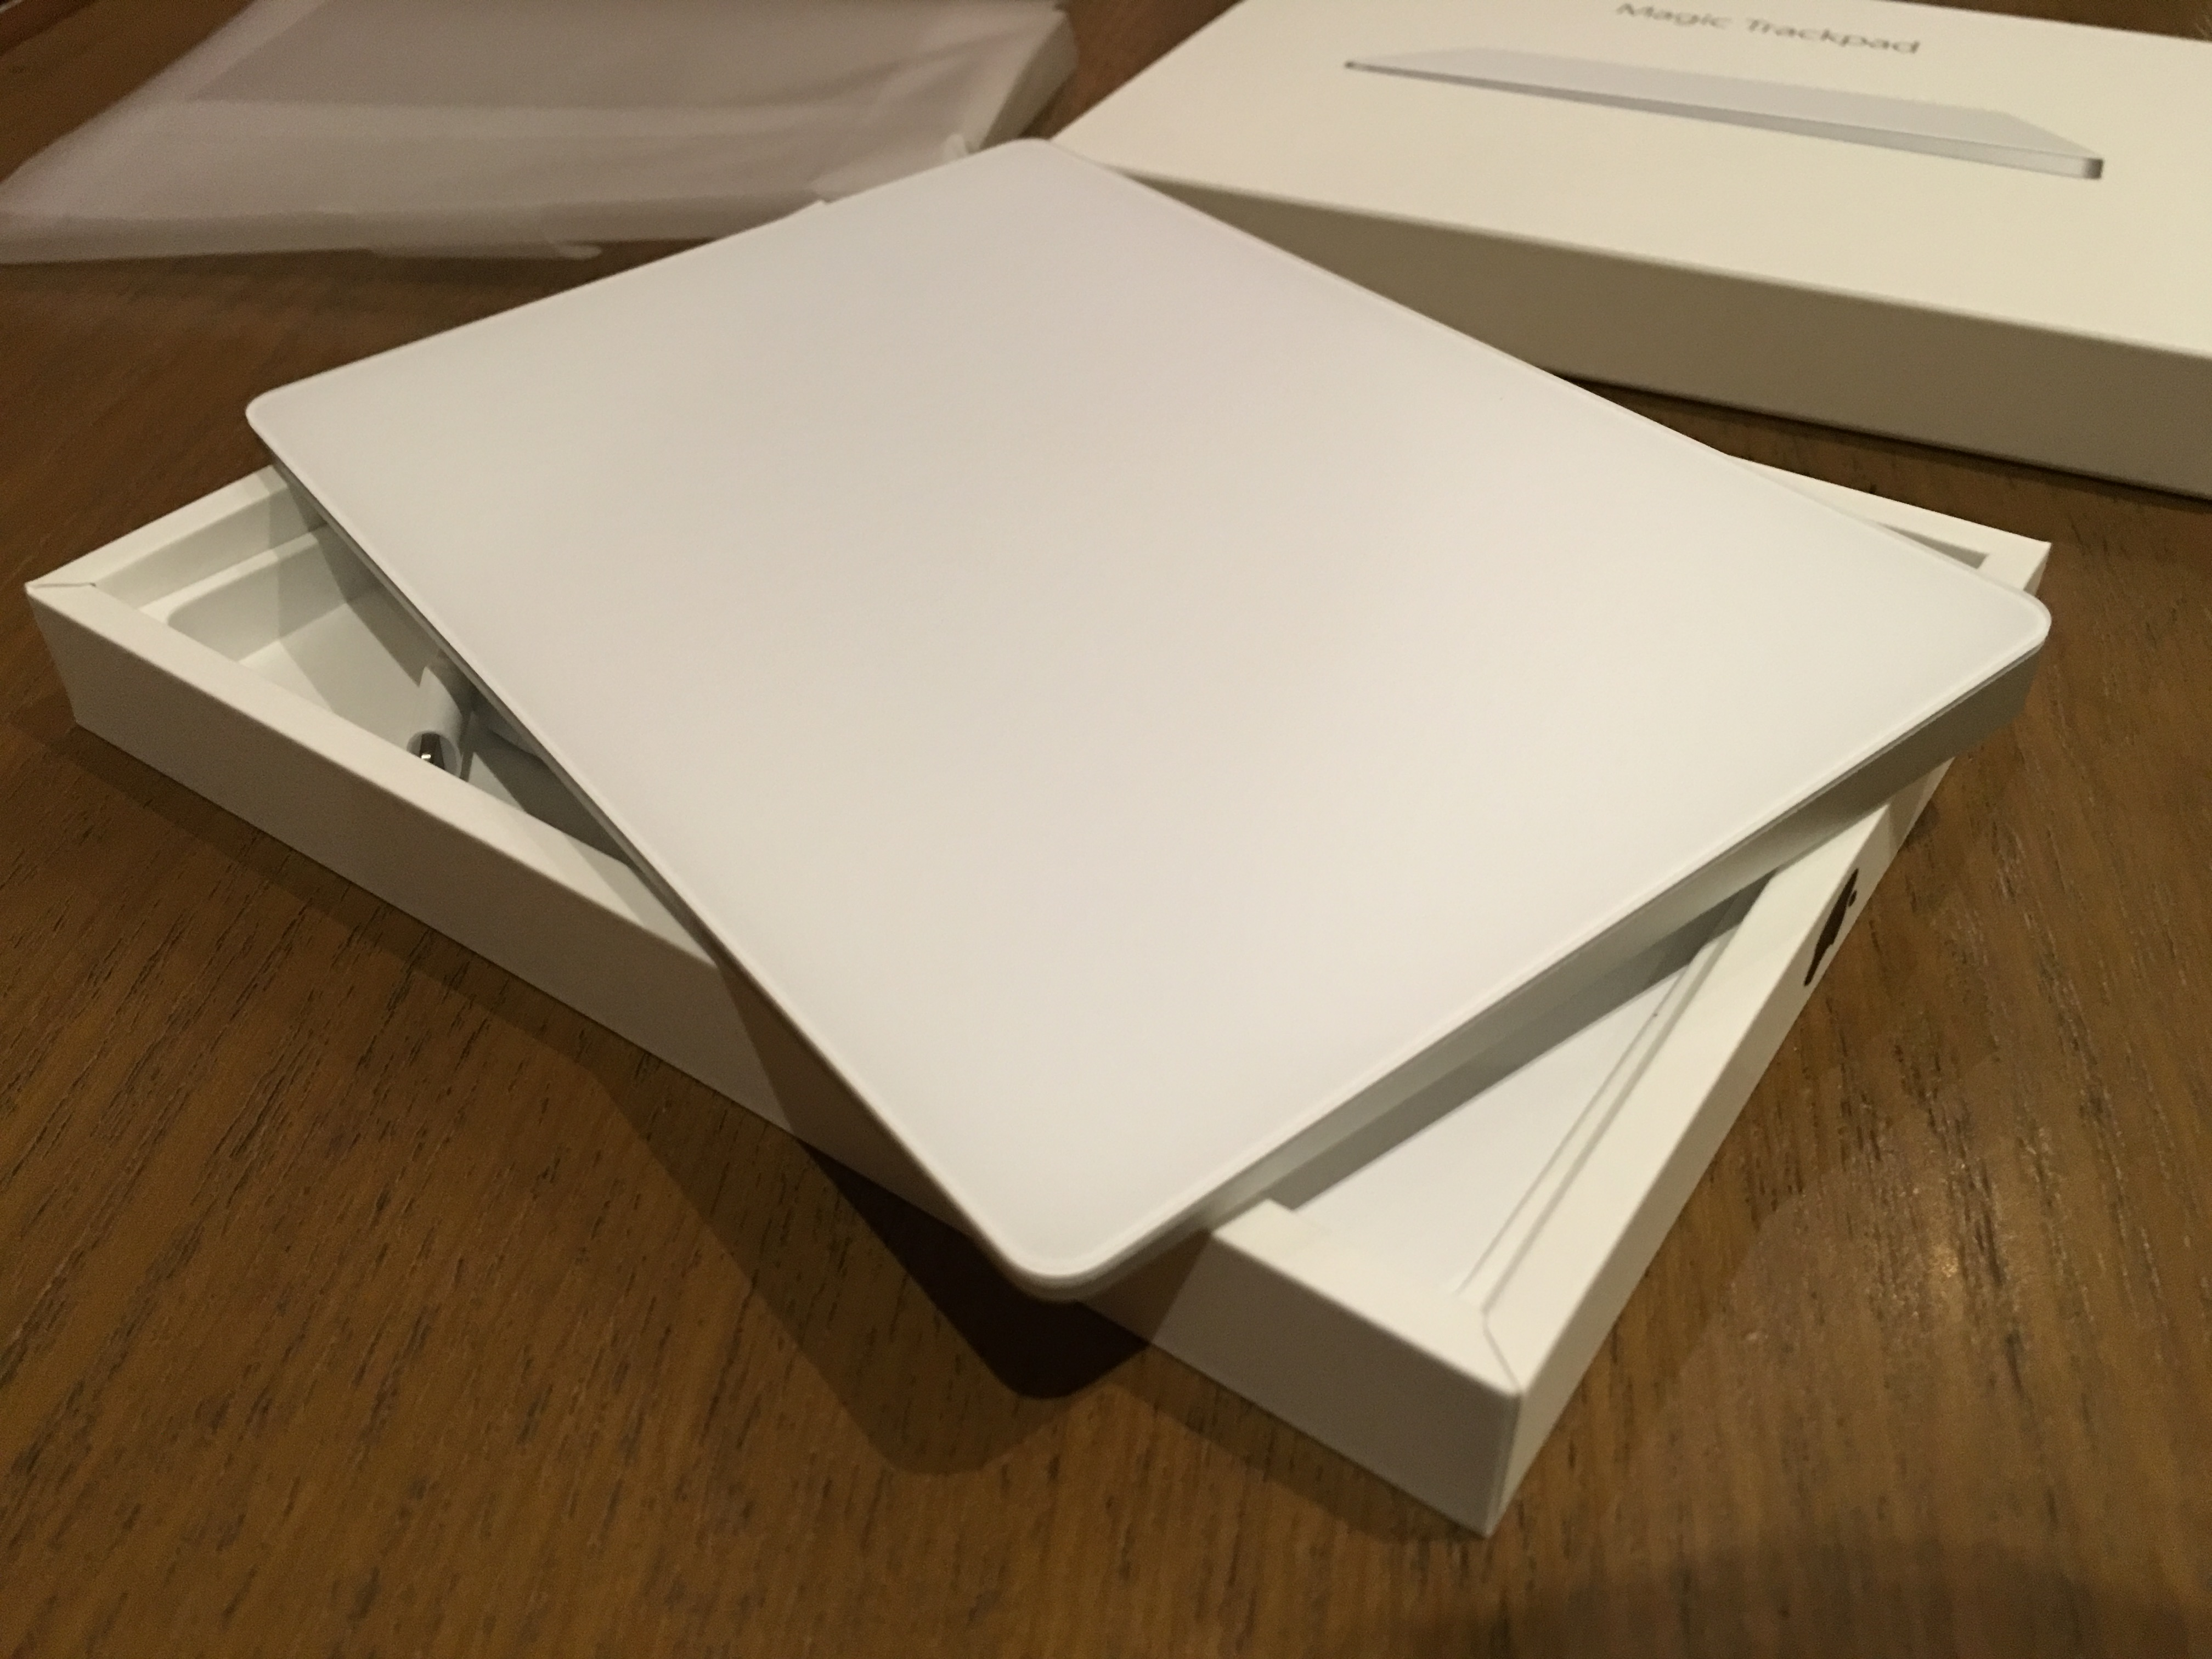 Magic Trackpad 2 Unboxing (it works with pre BT4.0 Macs ...